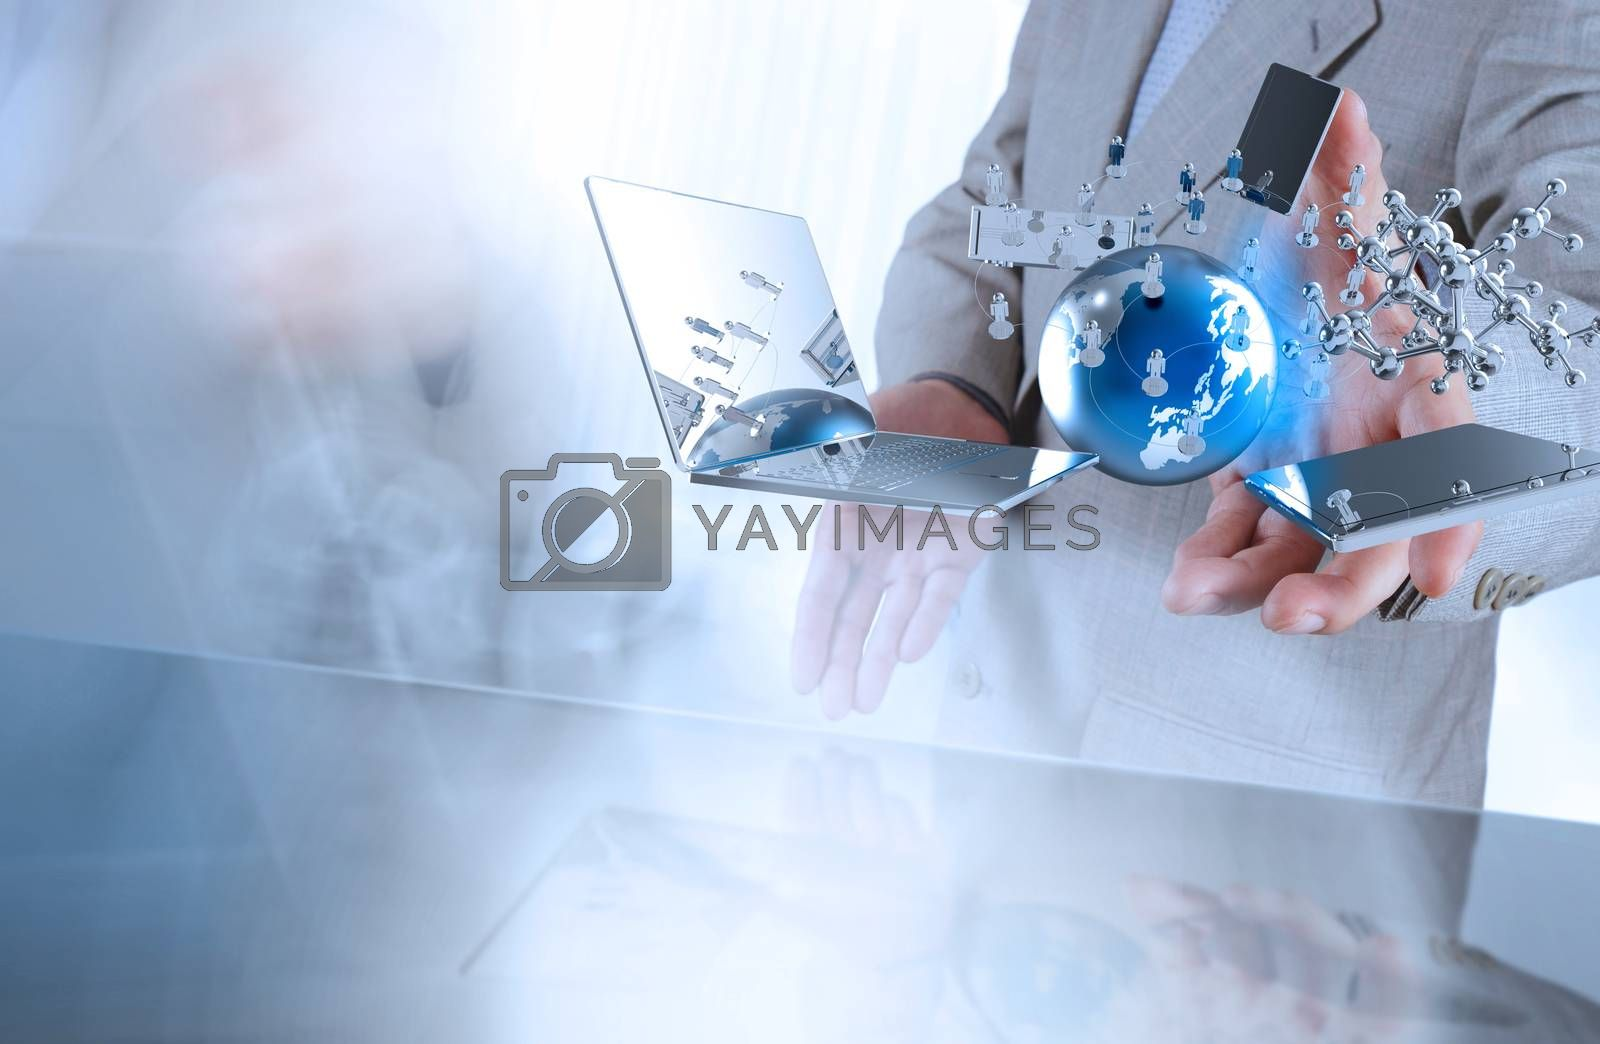 Royalty free image of businessman shows modern technology as concept  by everythingpossible